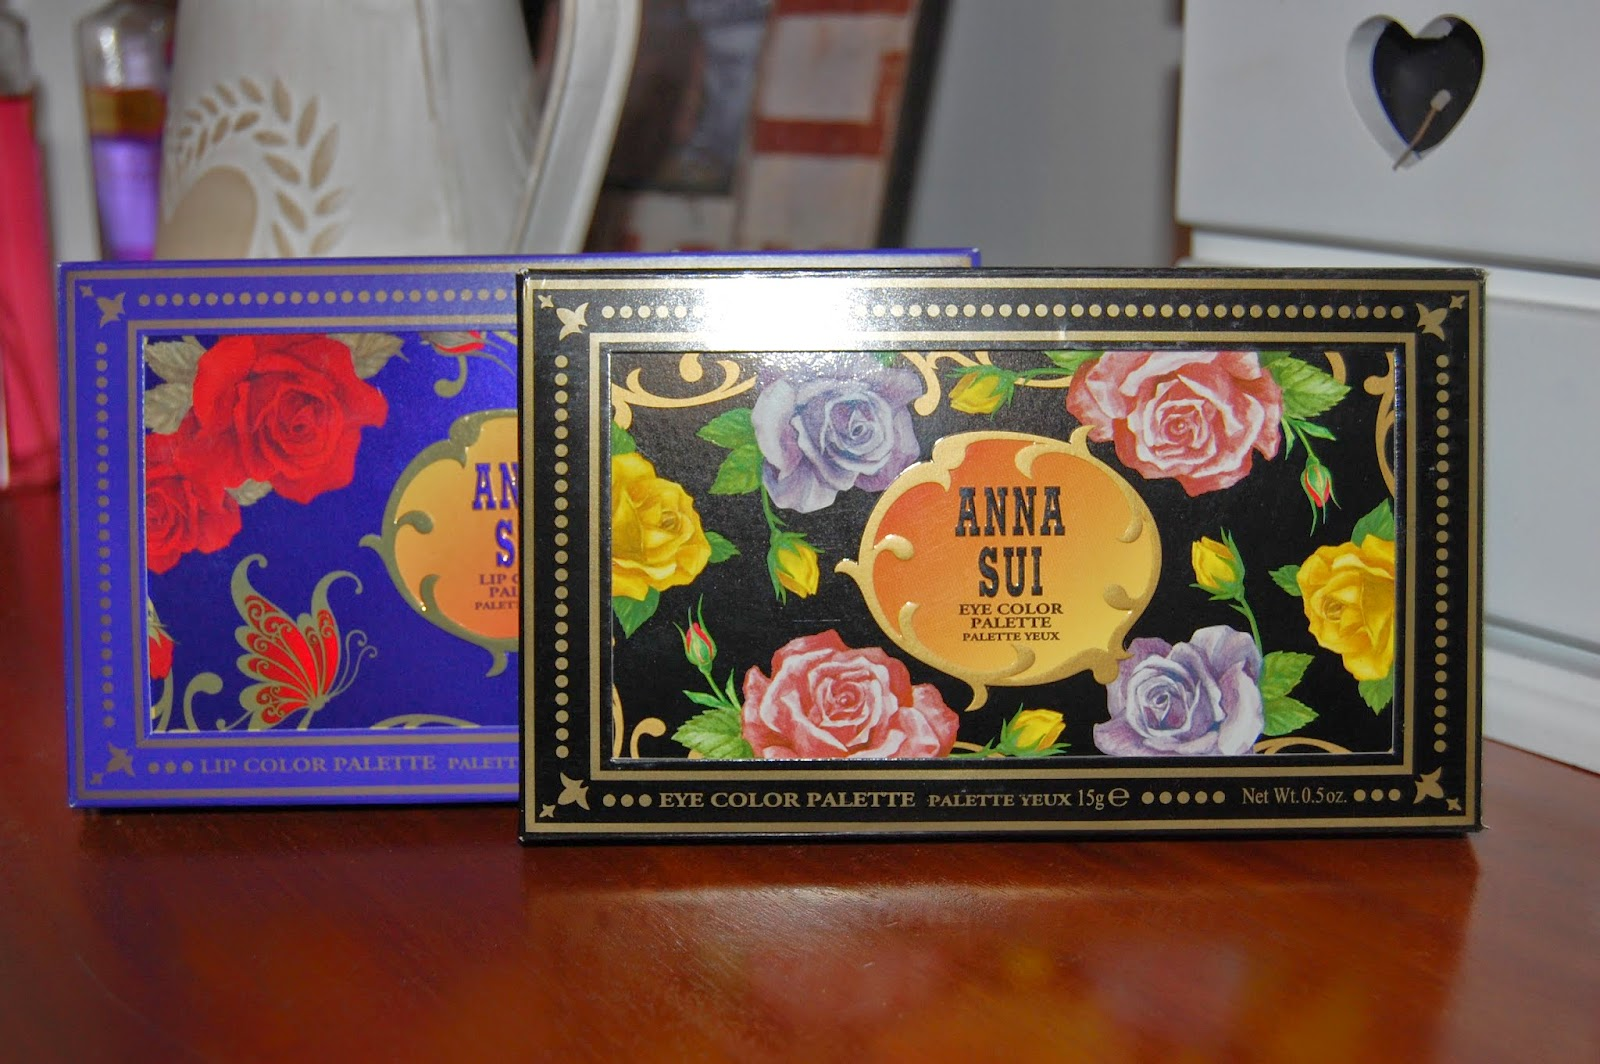 anna sui, make up, palette, bbloggers, make up, bblogger, beauty, skincare, girl, mac, mua, lipstick, eyeshadow, urban decay